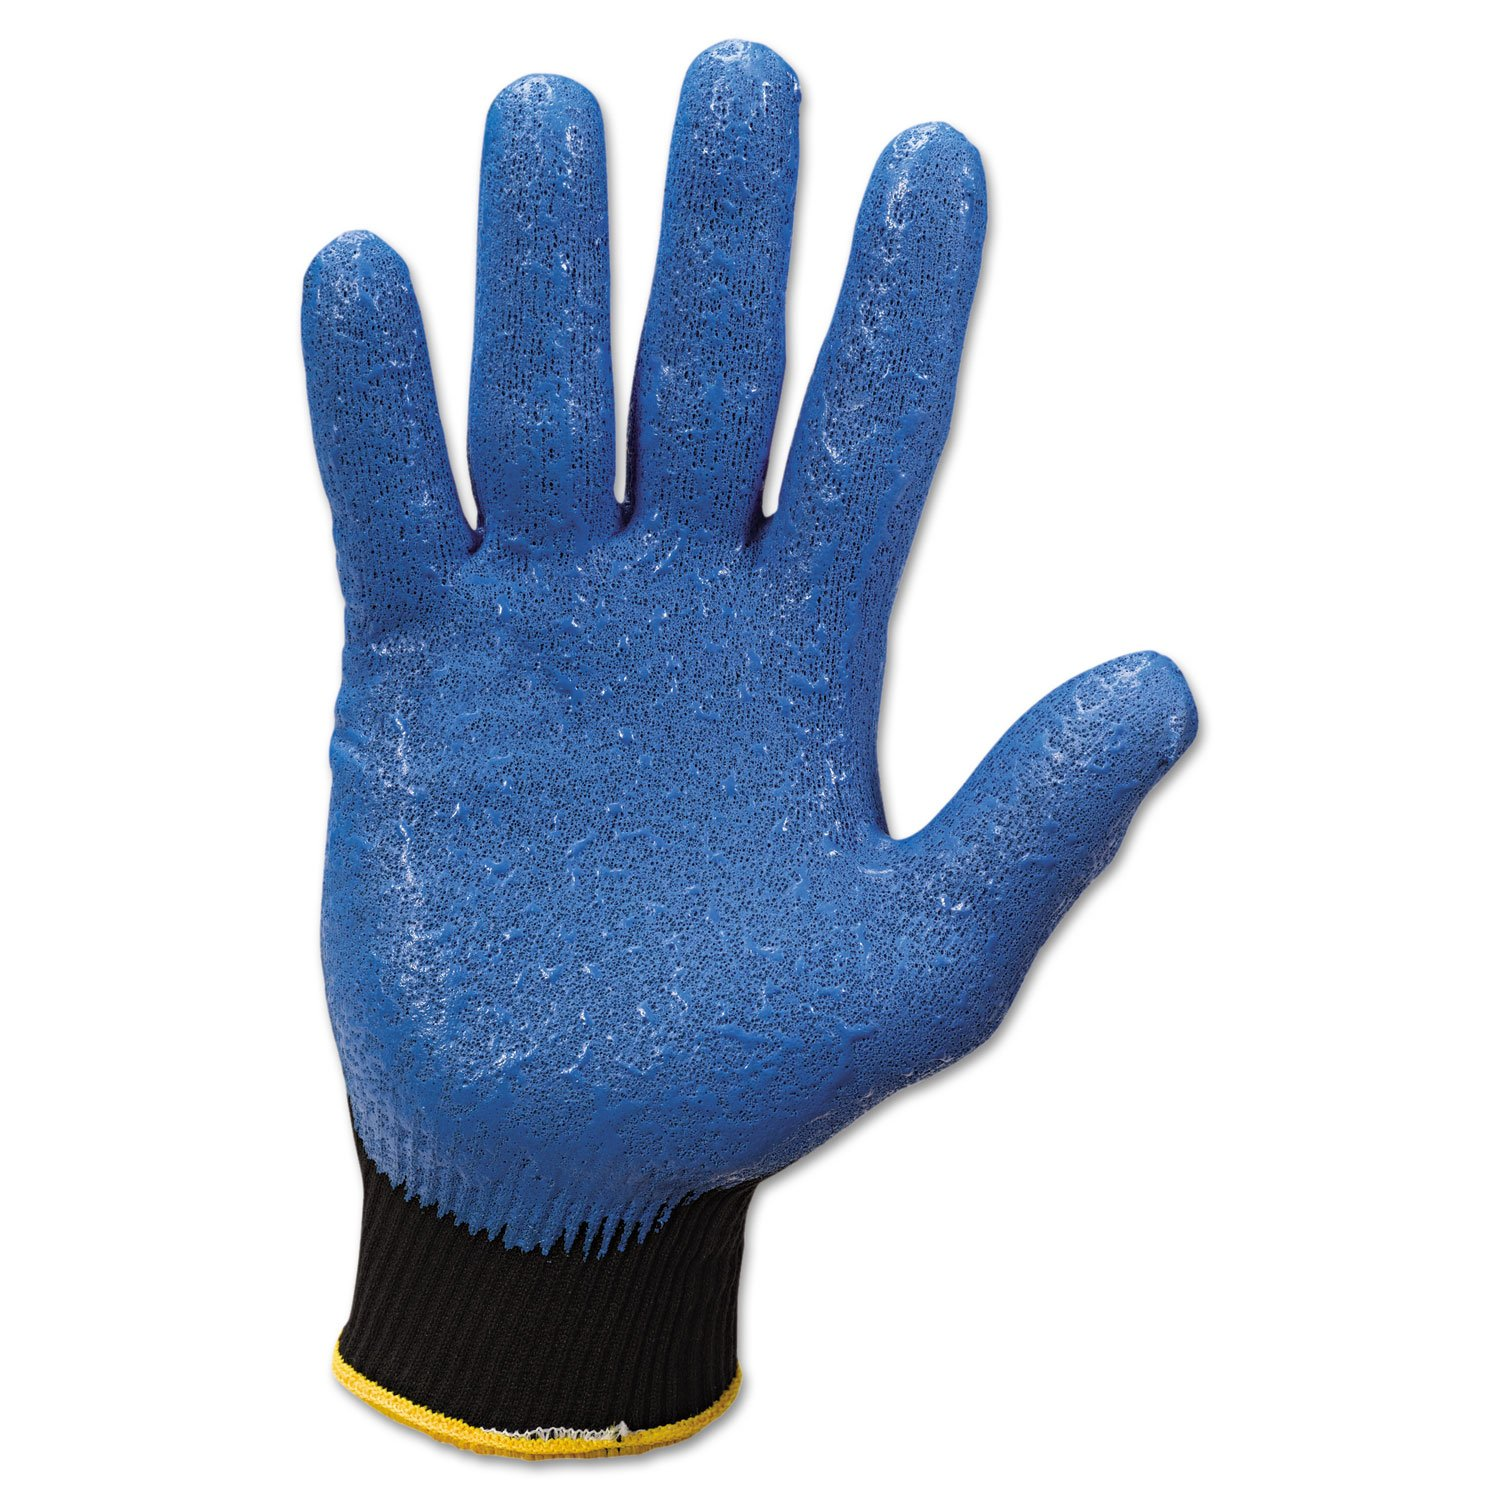 Jackson Safety 40227 G40 Nitrile Coated Gloves, 240 mm Length, Large/Size 9, Blue (Pack of 12 Pairs)